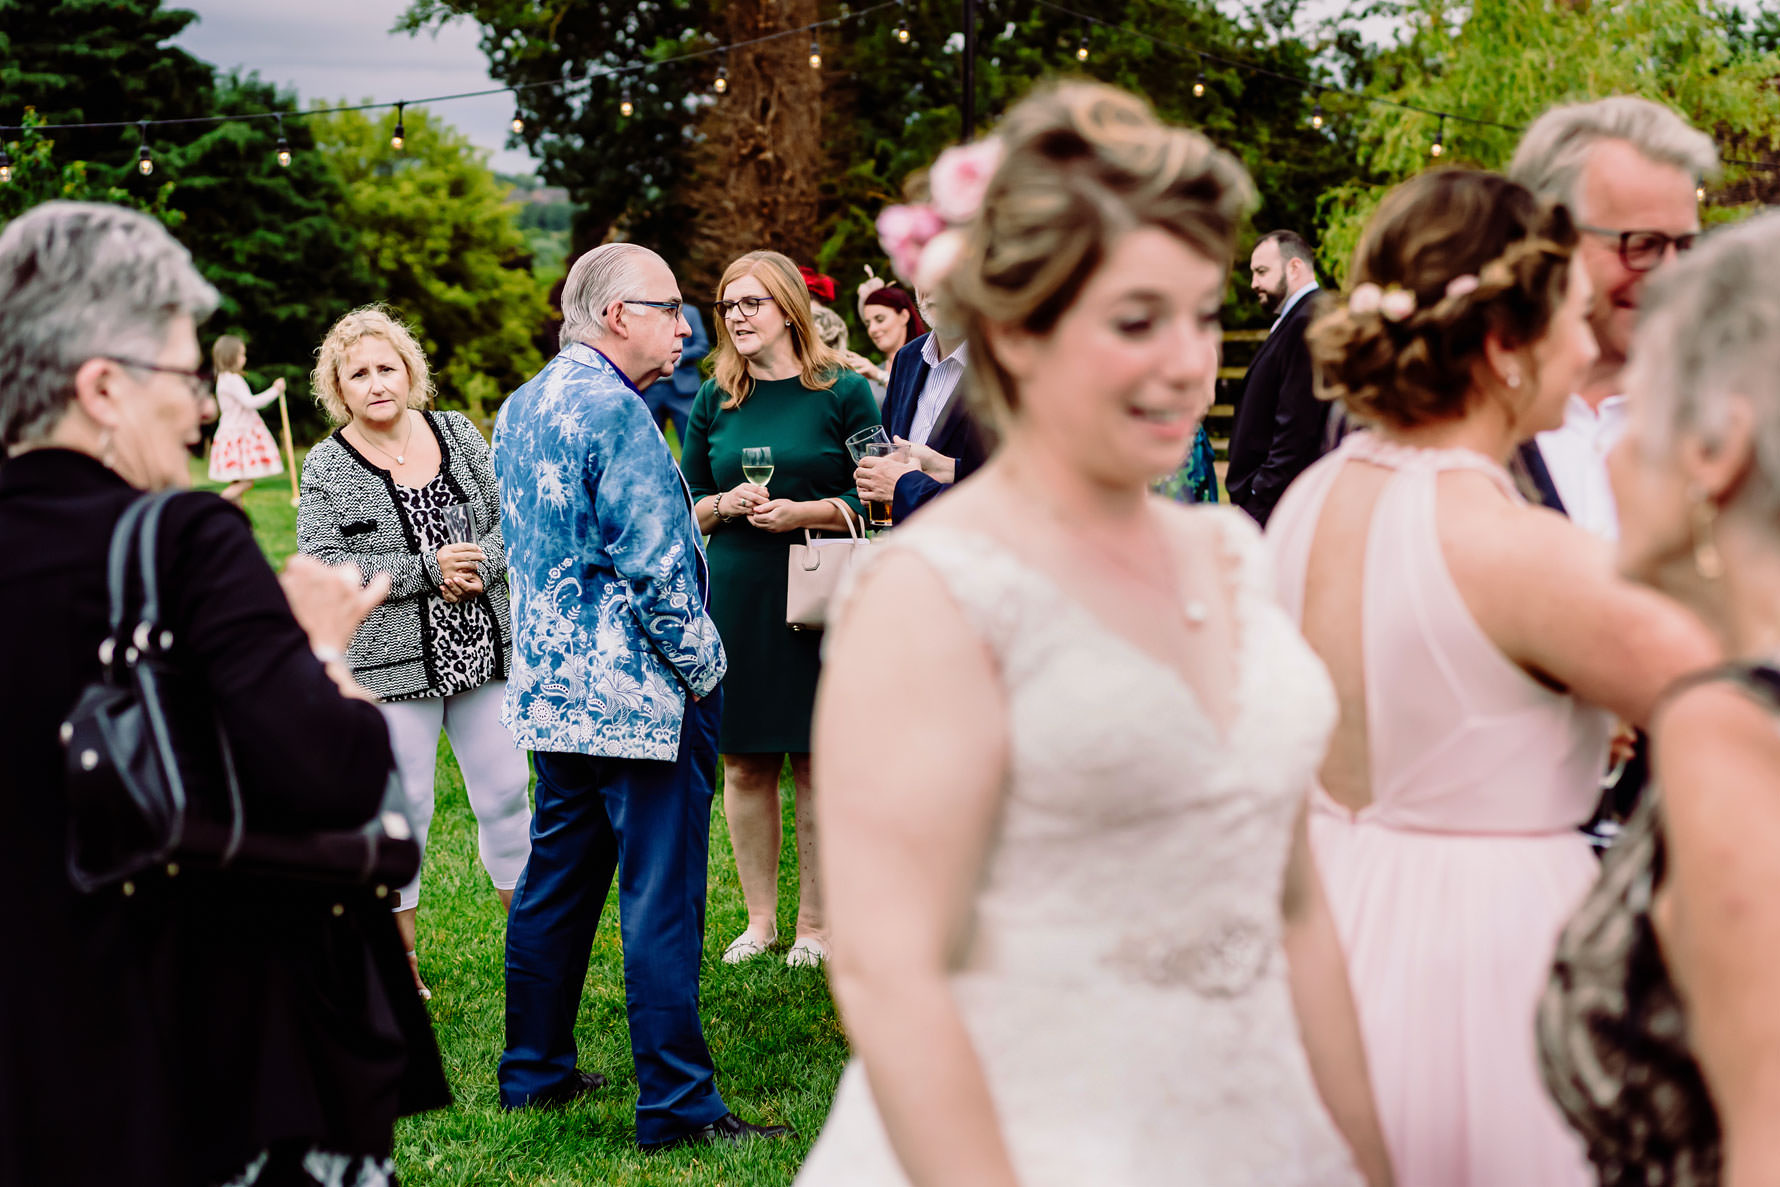 a wedding guest looks at the wedding dress